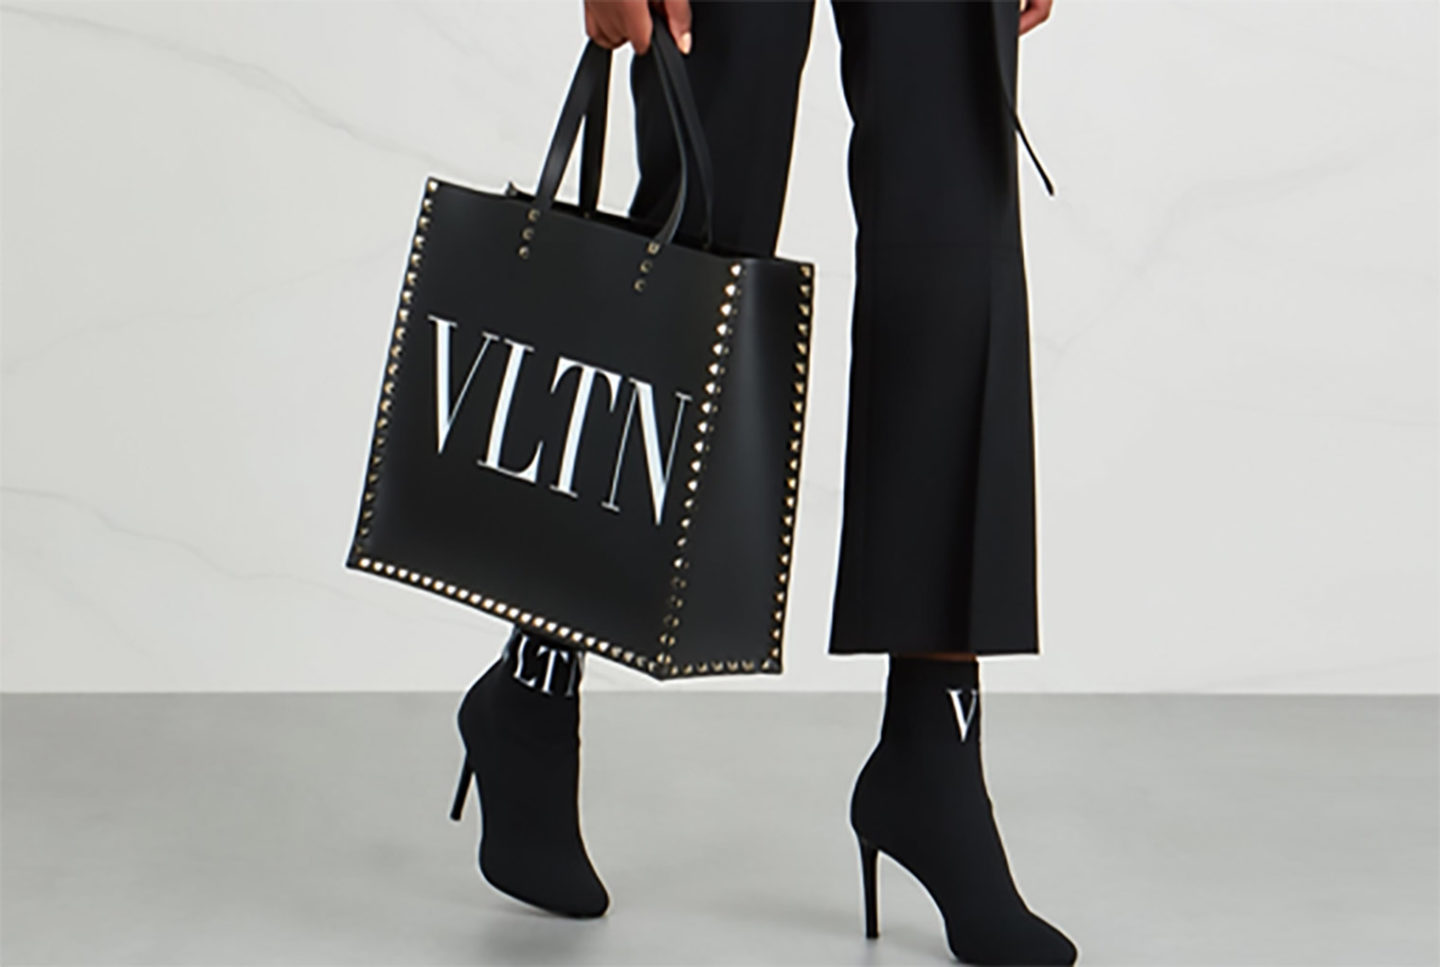 10 best designer tote bags you want to buy this season